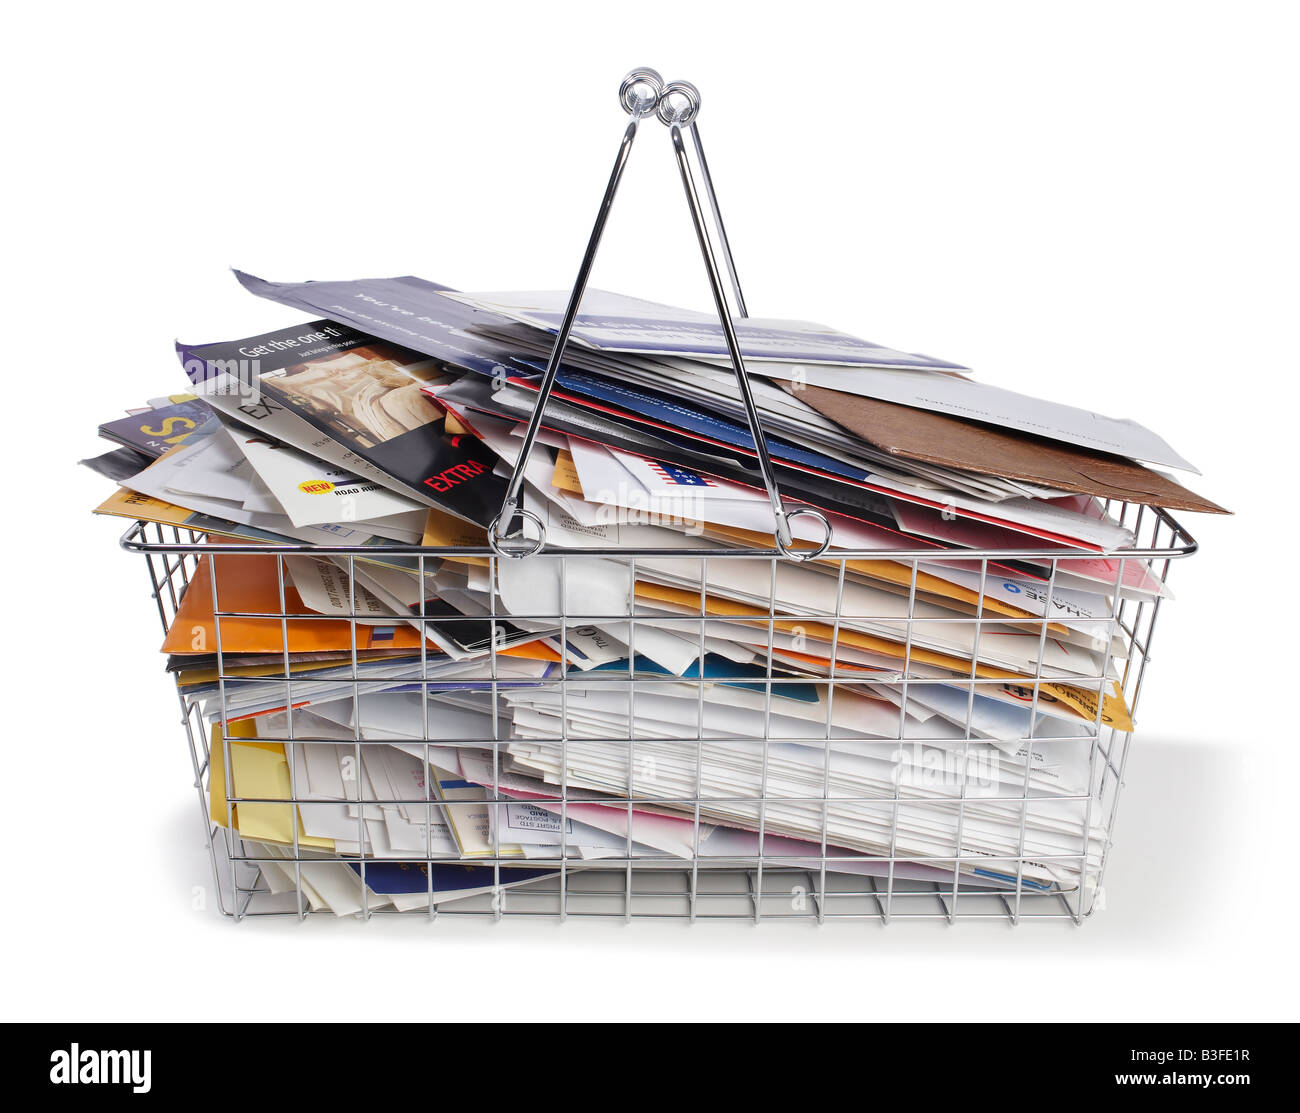 Shopping basket with junk mail - Stock Image